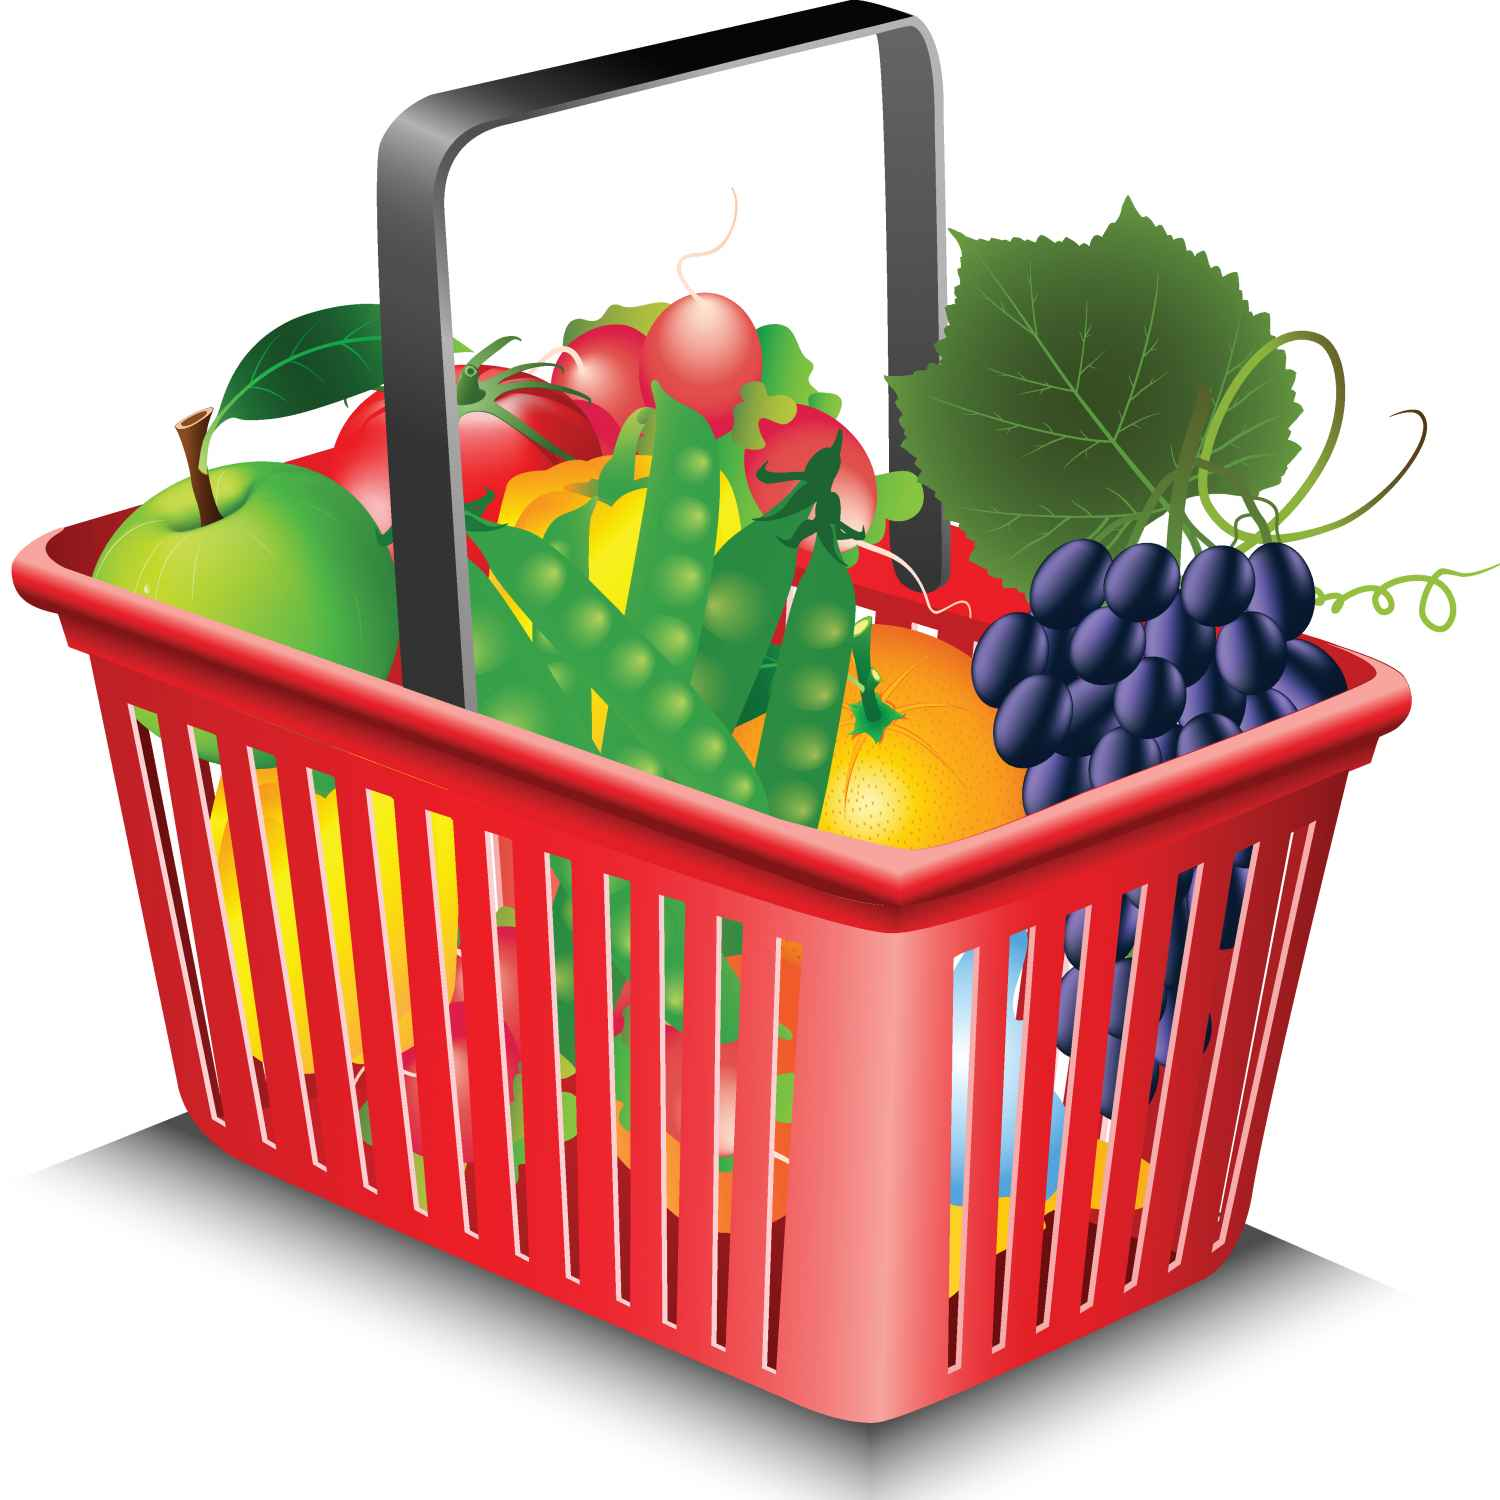 1500x1500 Vegetable Basket Clip Art